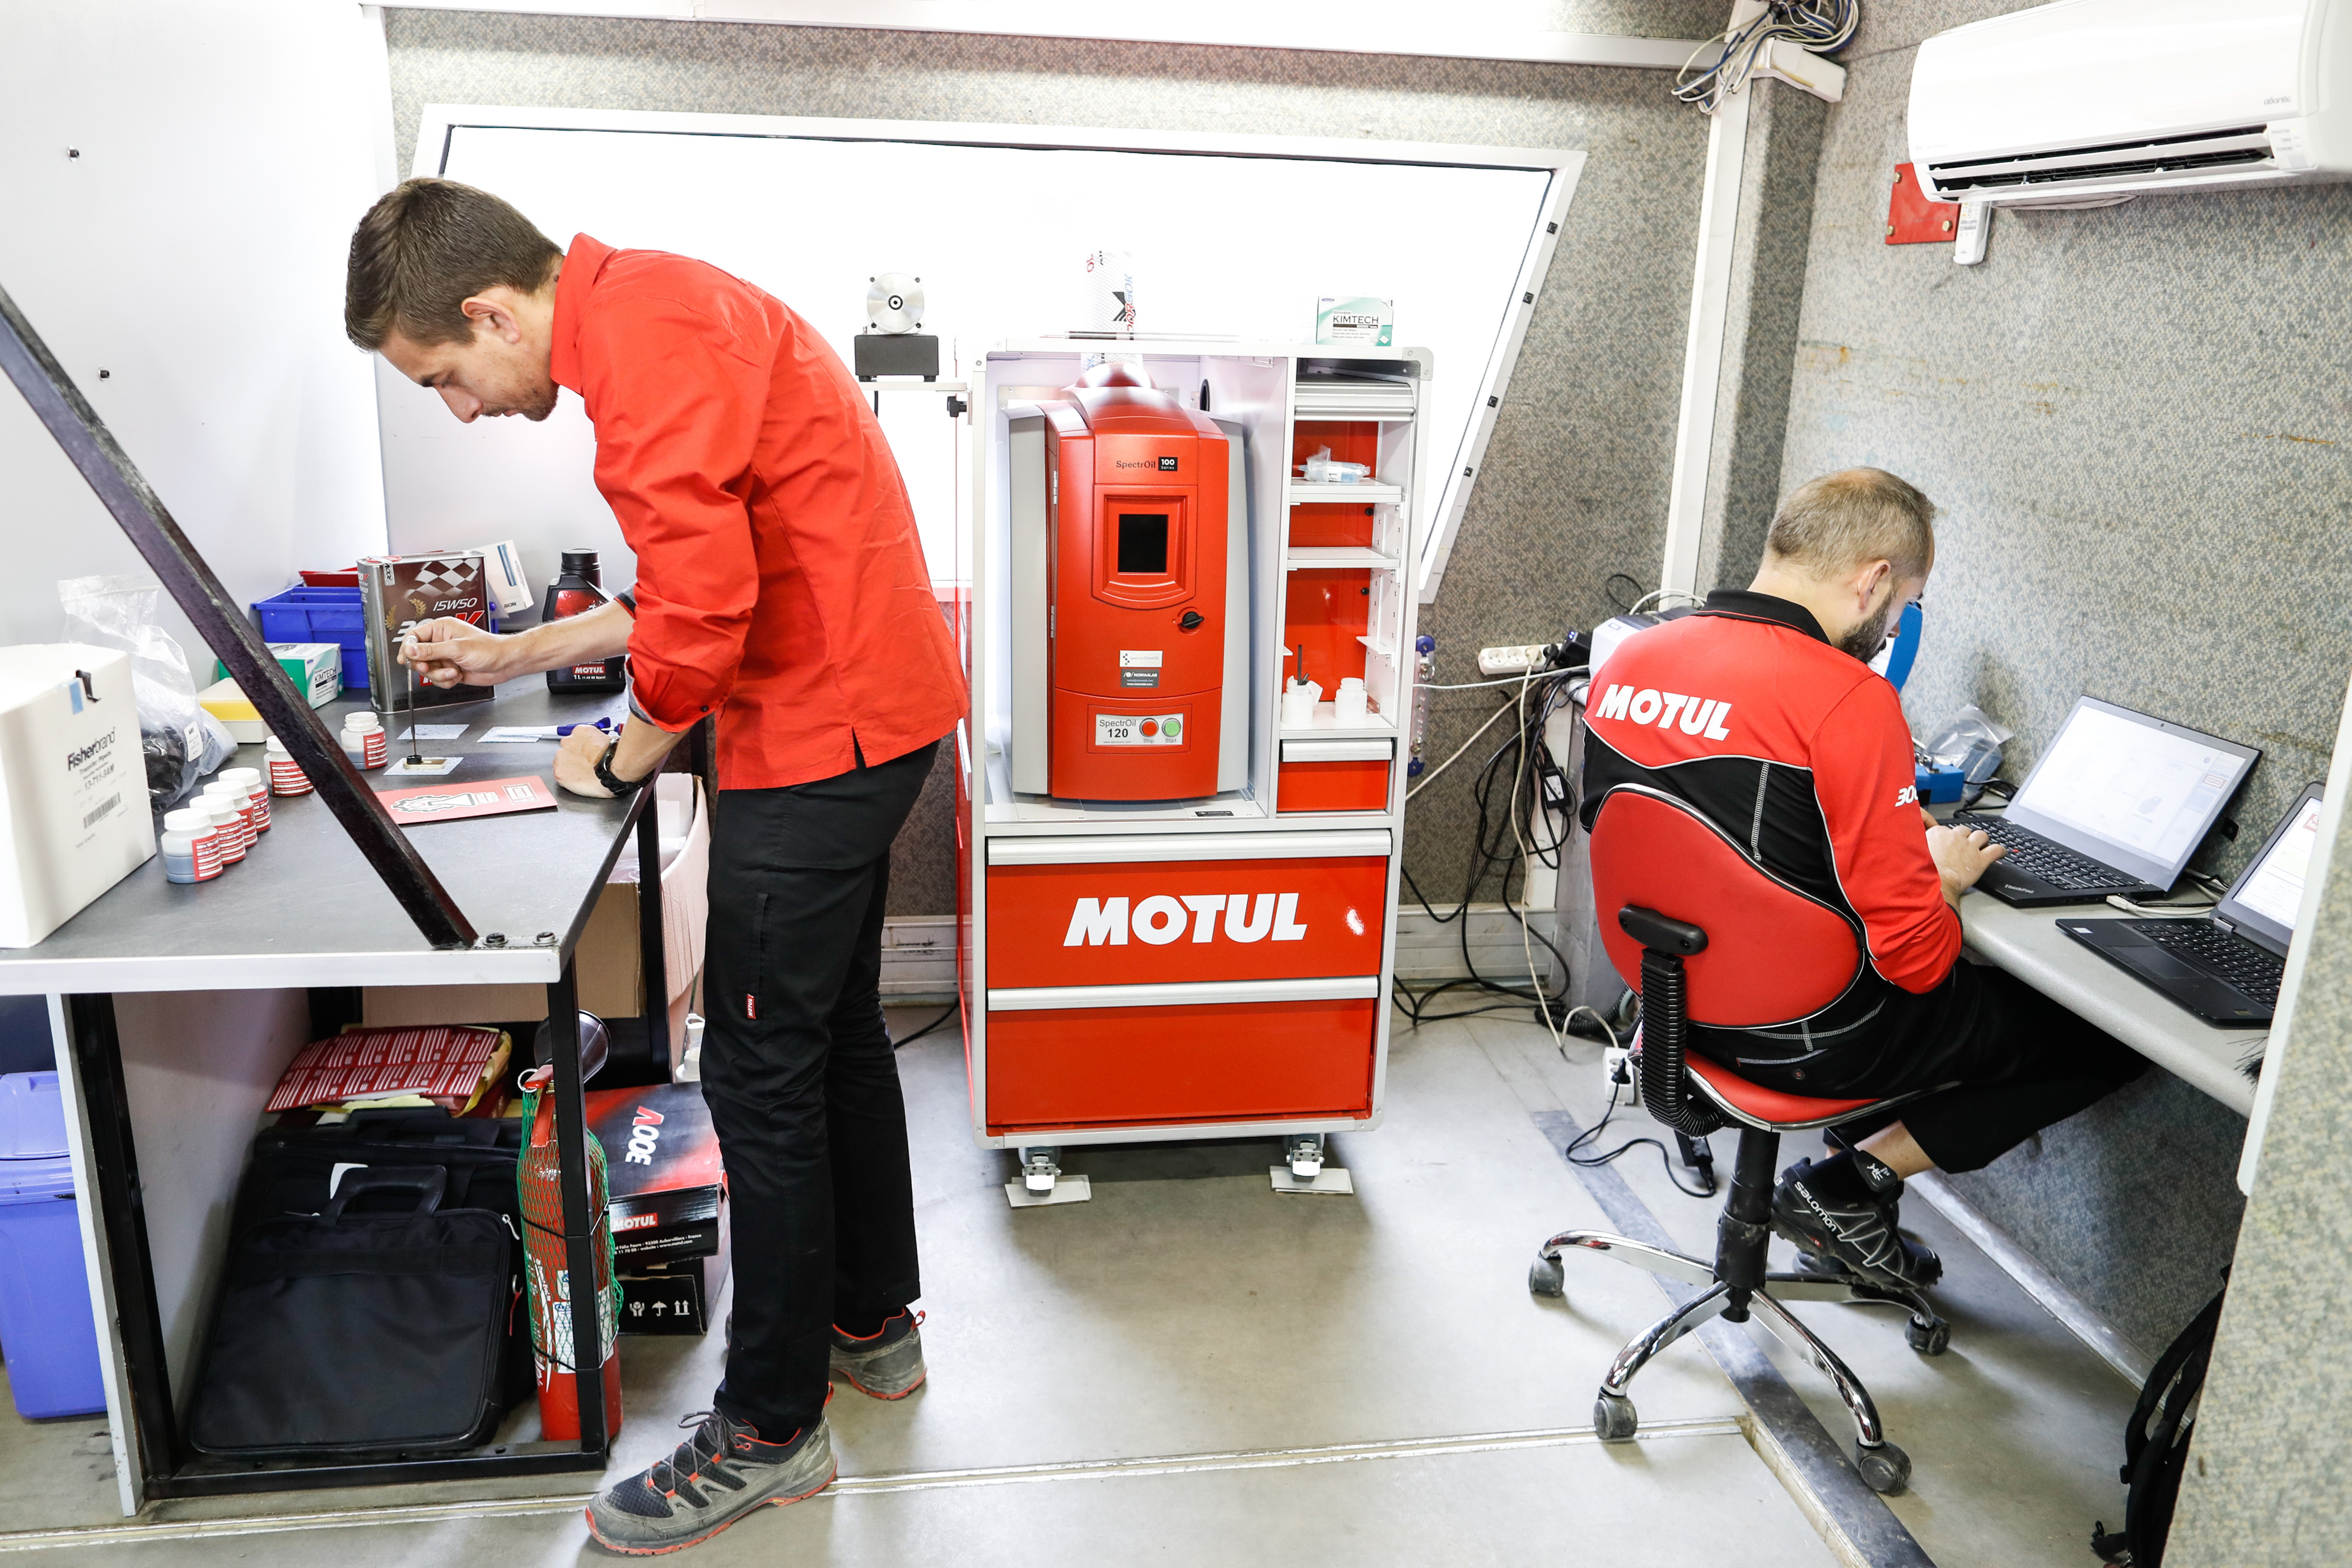 Joseph, can you introduce yourself? What's your profession at Motul?